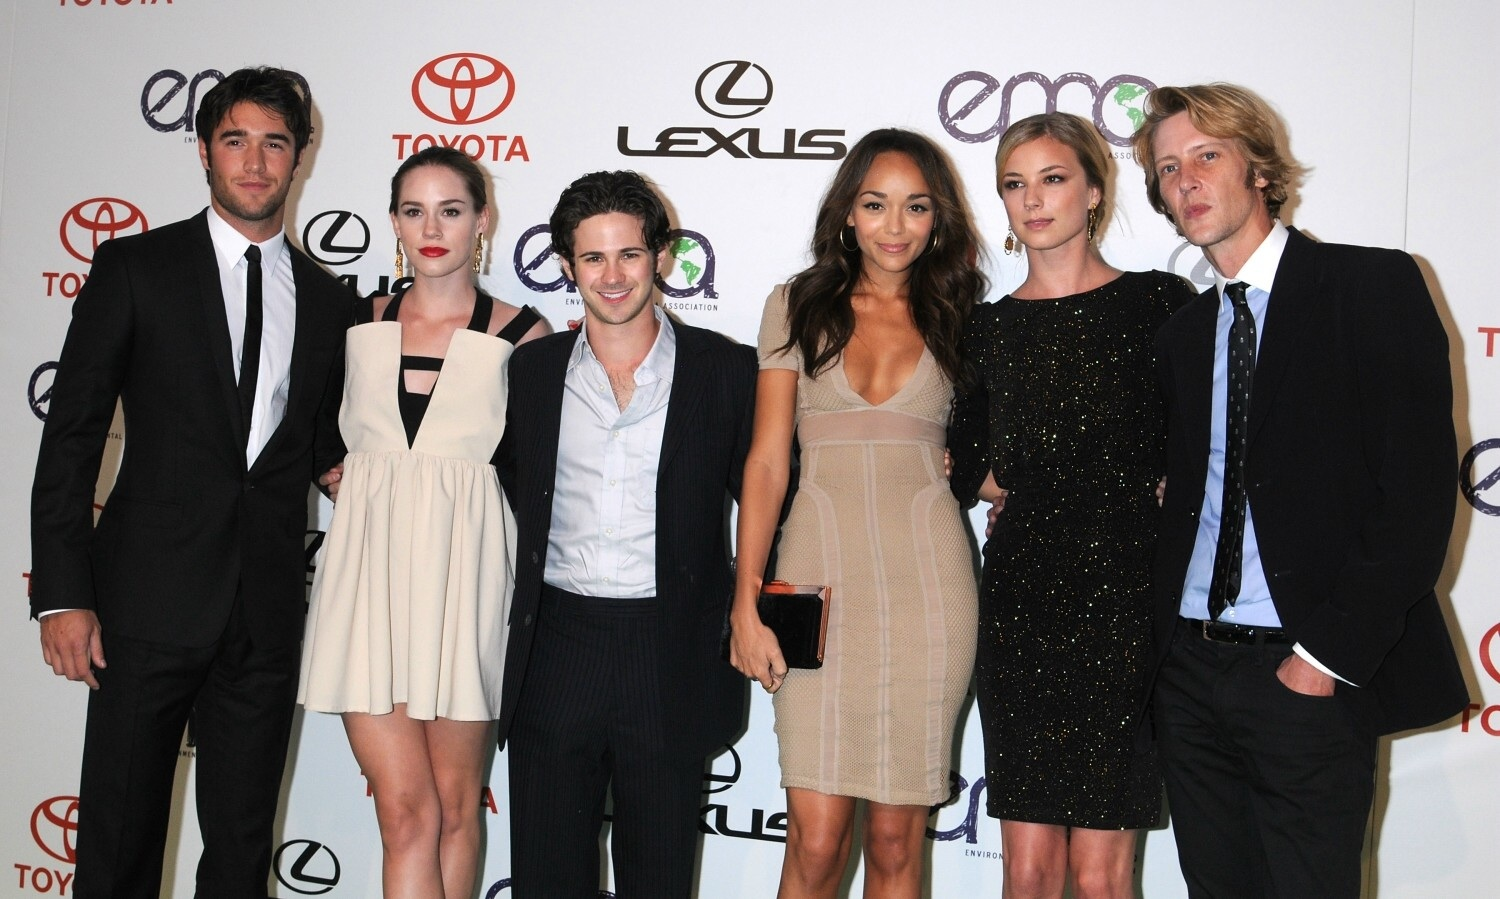 revenge cast members dating Perspectives daniel grayson - revenge daniel grayson season 2 emily finds out that daniel is dating ashley at the beginning of season two,  he tried to convince an investor, salvador grobet, to vote for him since grobet held influence over the core members of the board of directors daniel proved himself to be more ruthless in business.